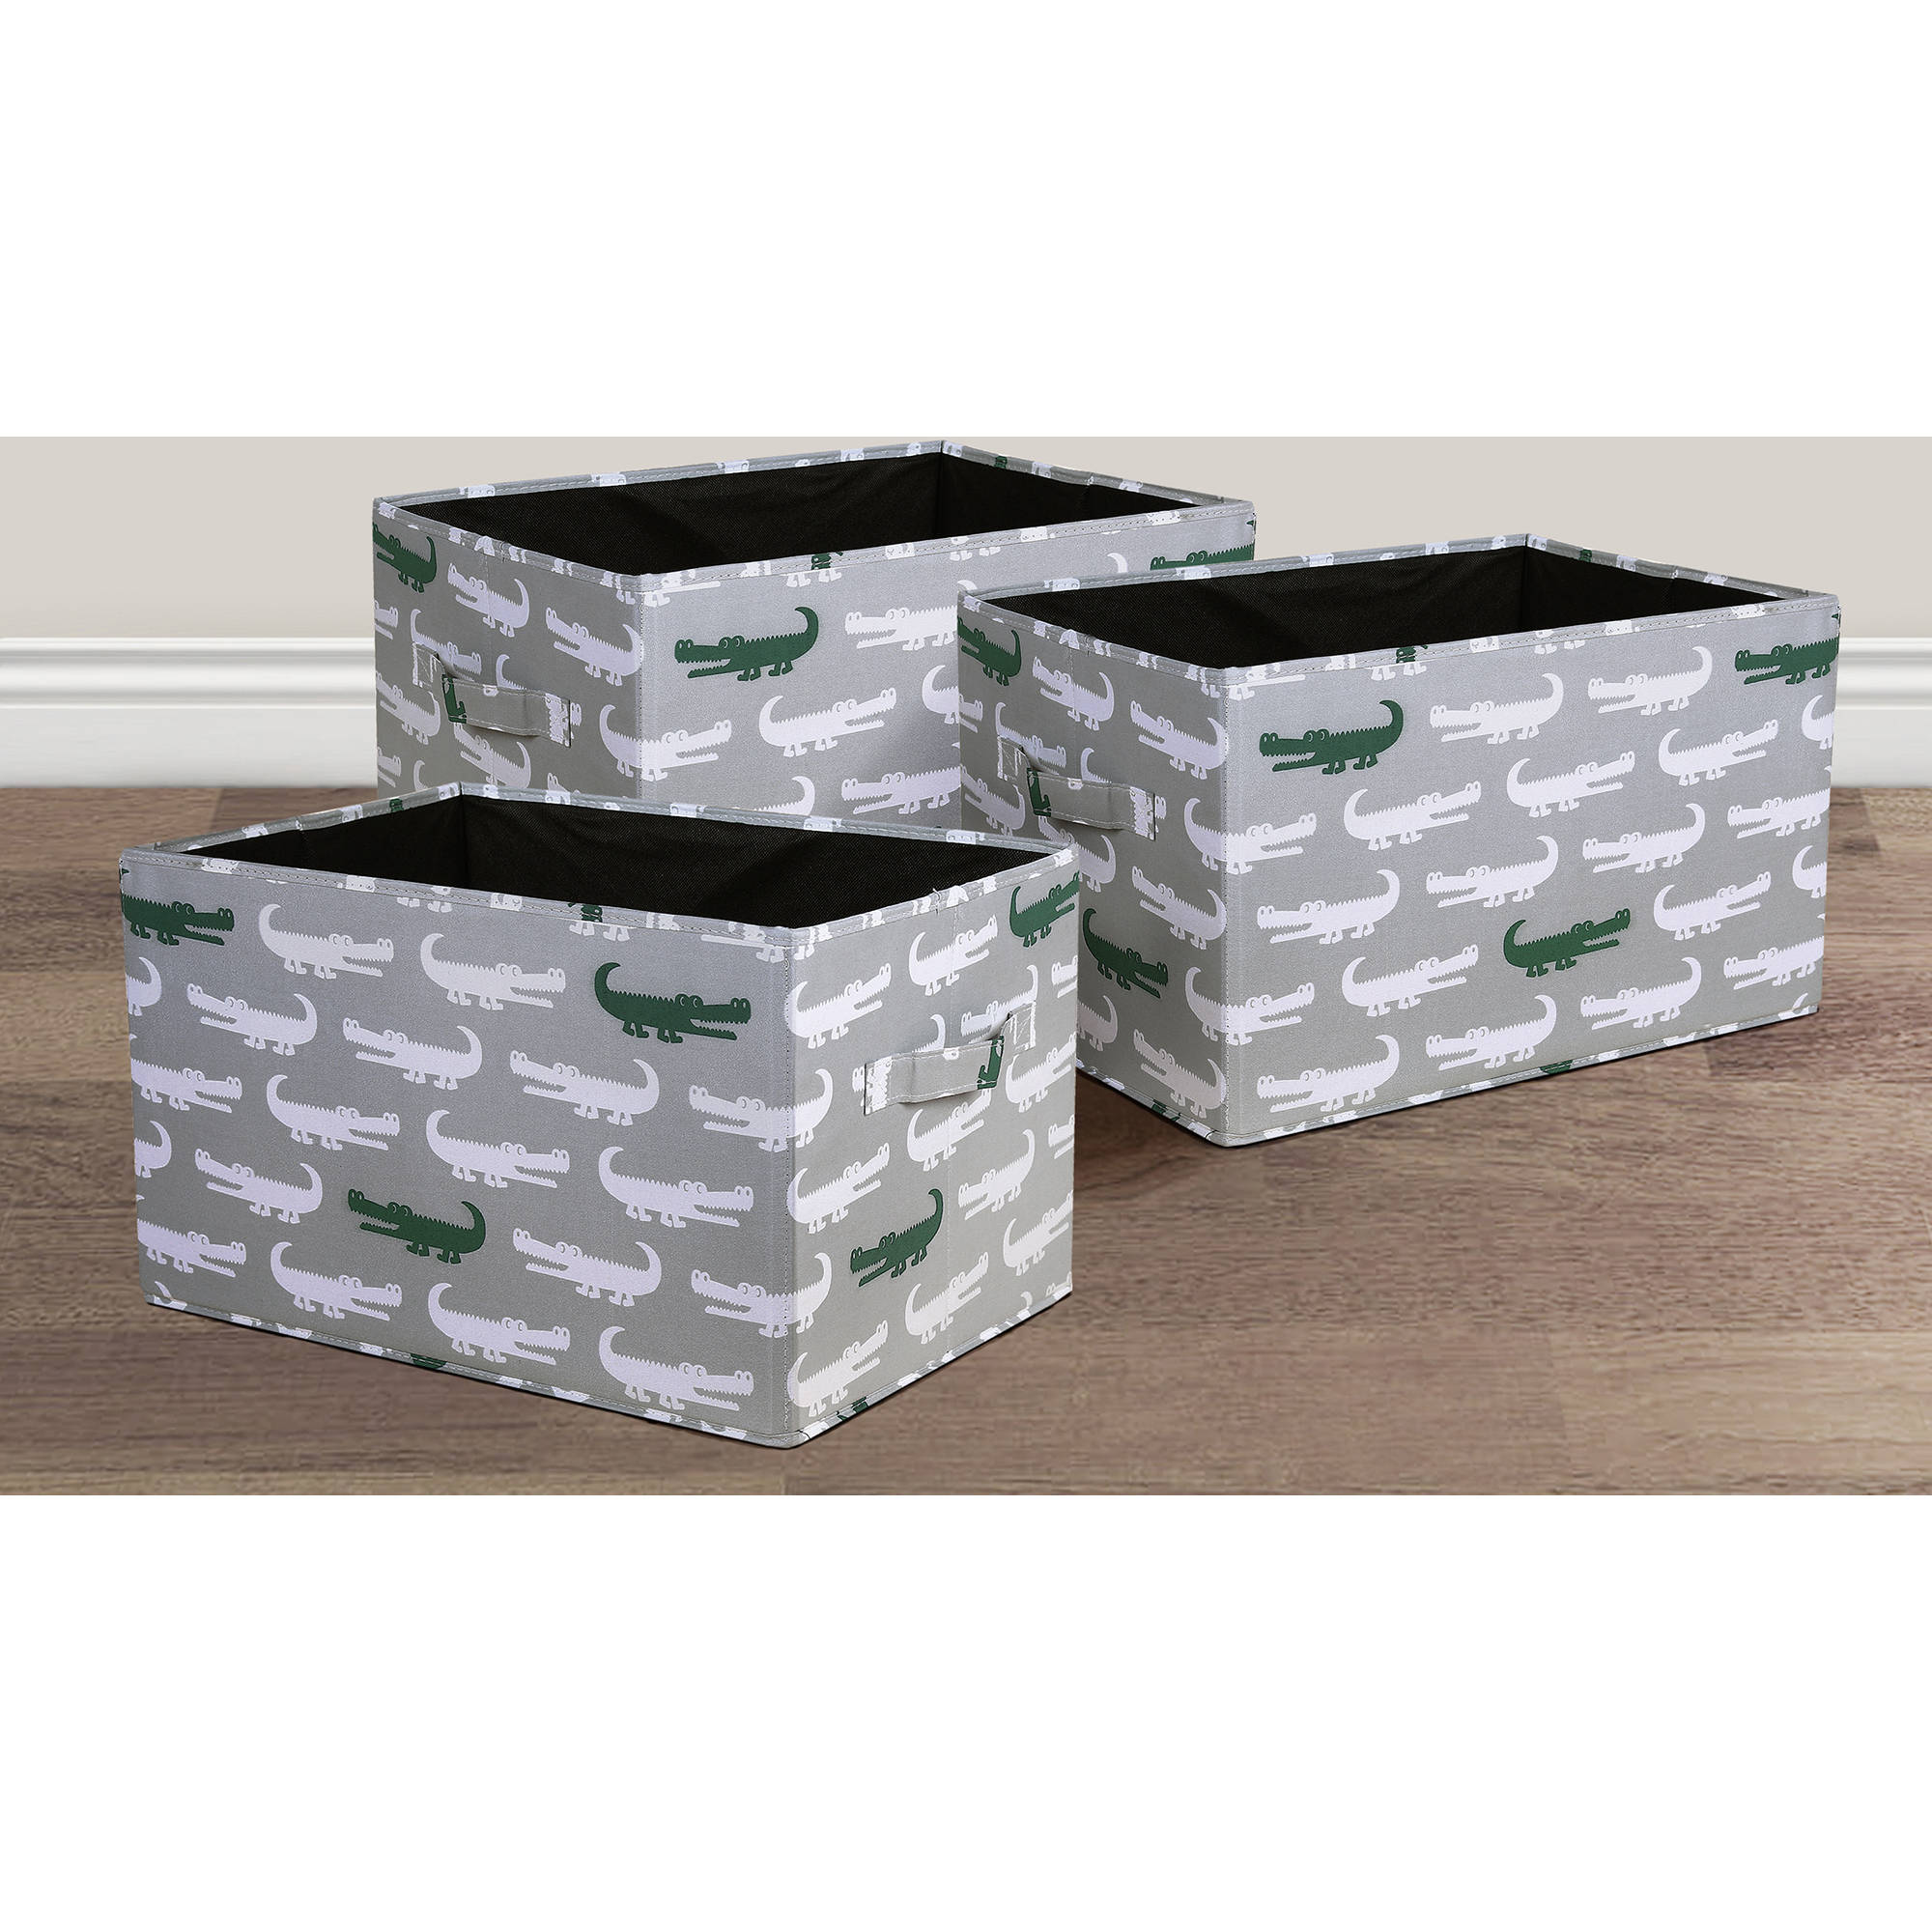 Alligator Fabric Covered Collapsible Box Gray/Green 3-Piece Set